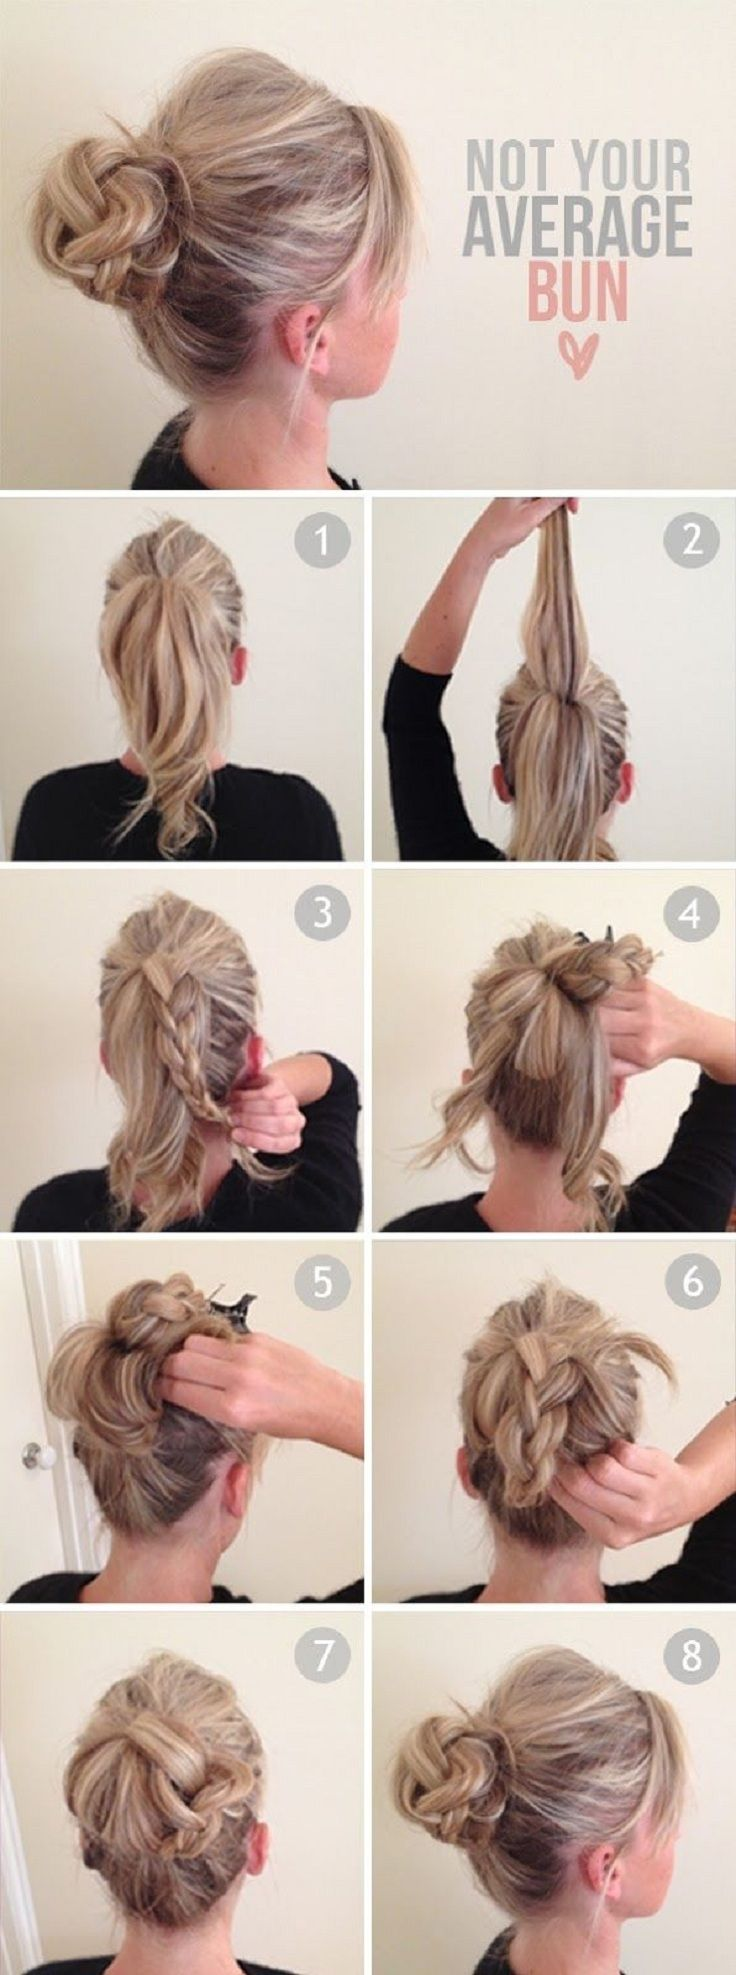 "The ""Not Your Average Bun"" bun!"